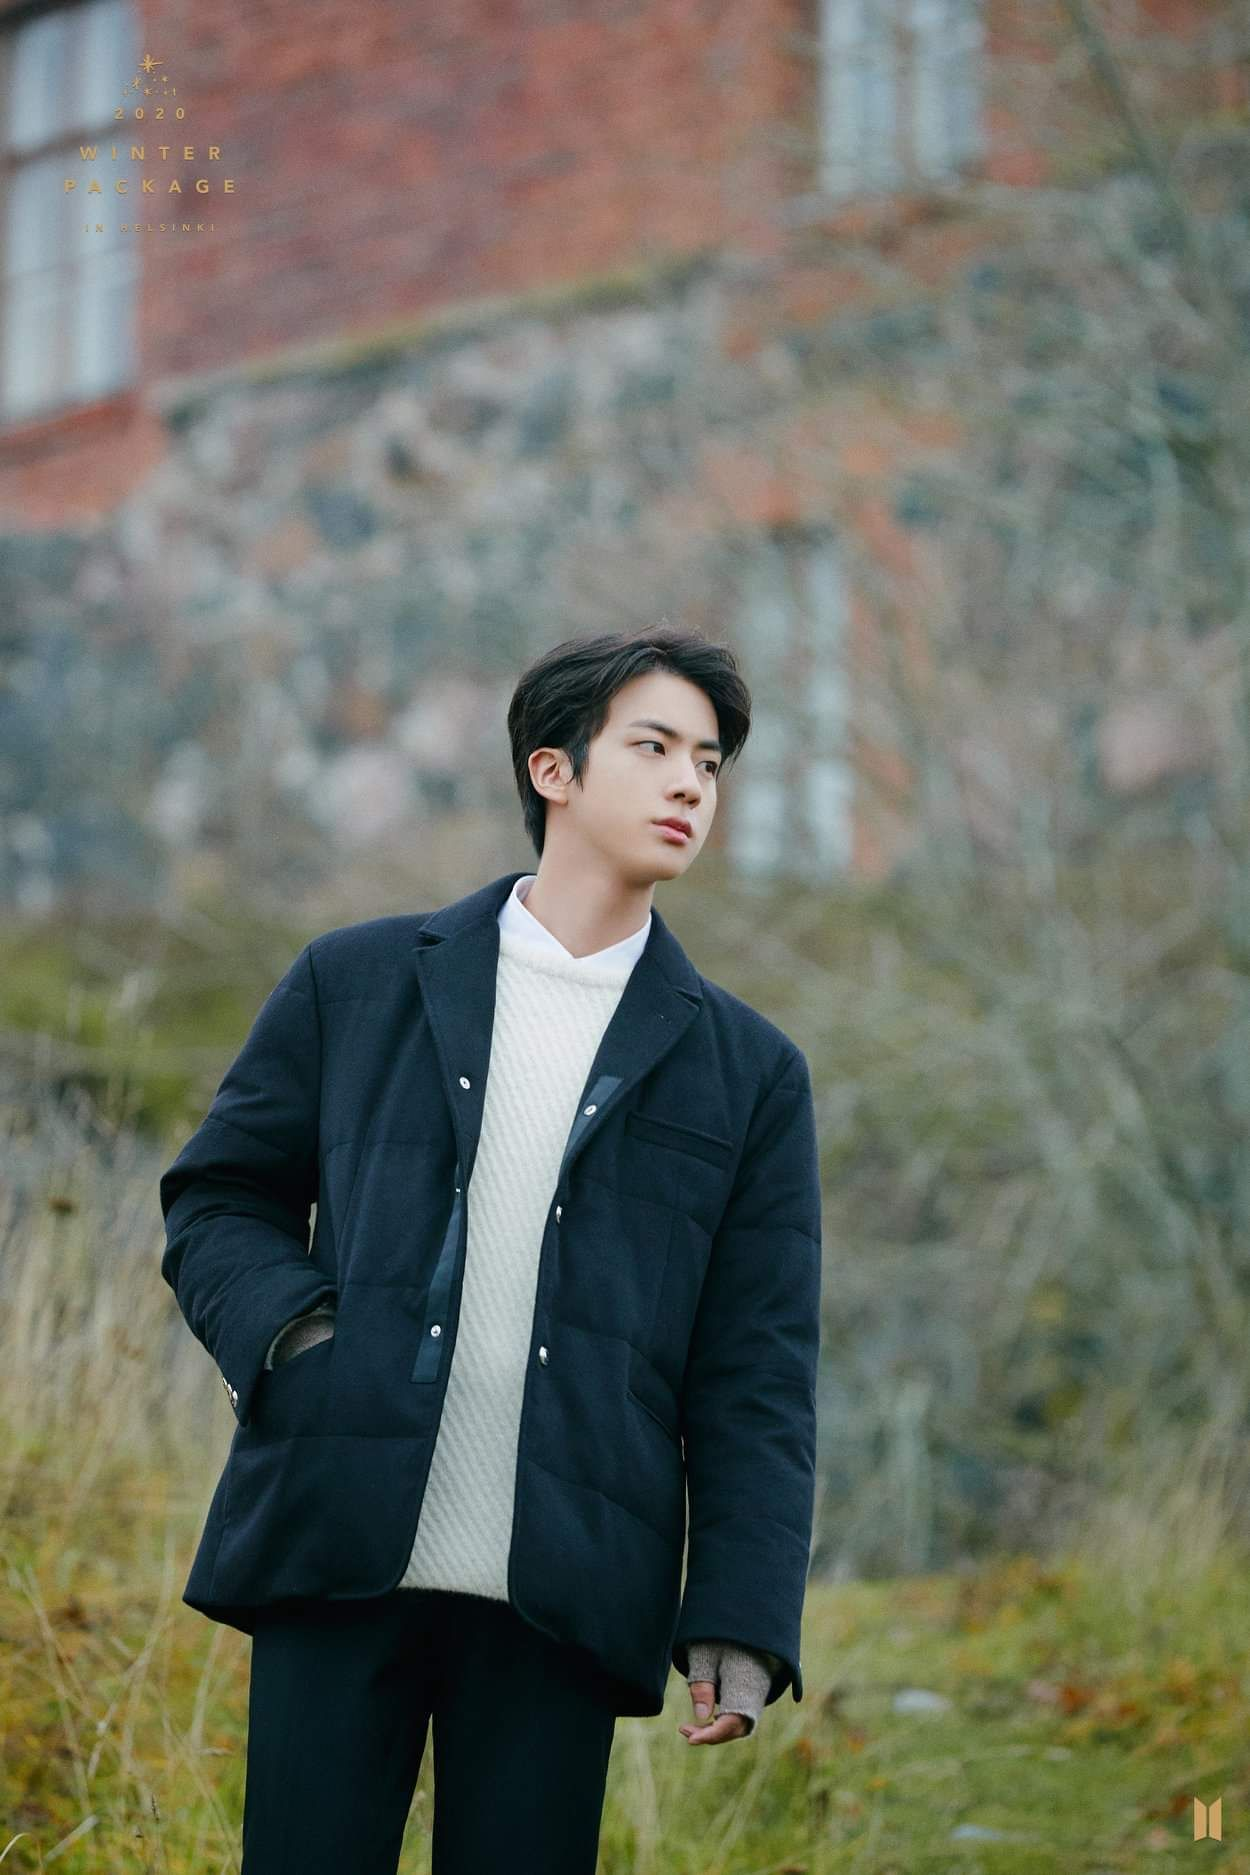 bts 2020 winter package in 2020 Bts jin Seokjin Worldwide handsome 1250x1875